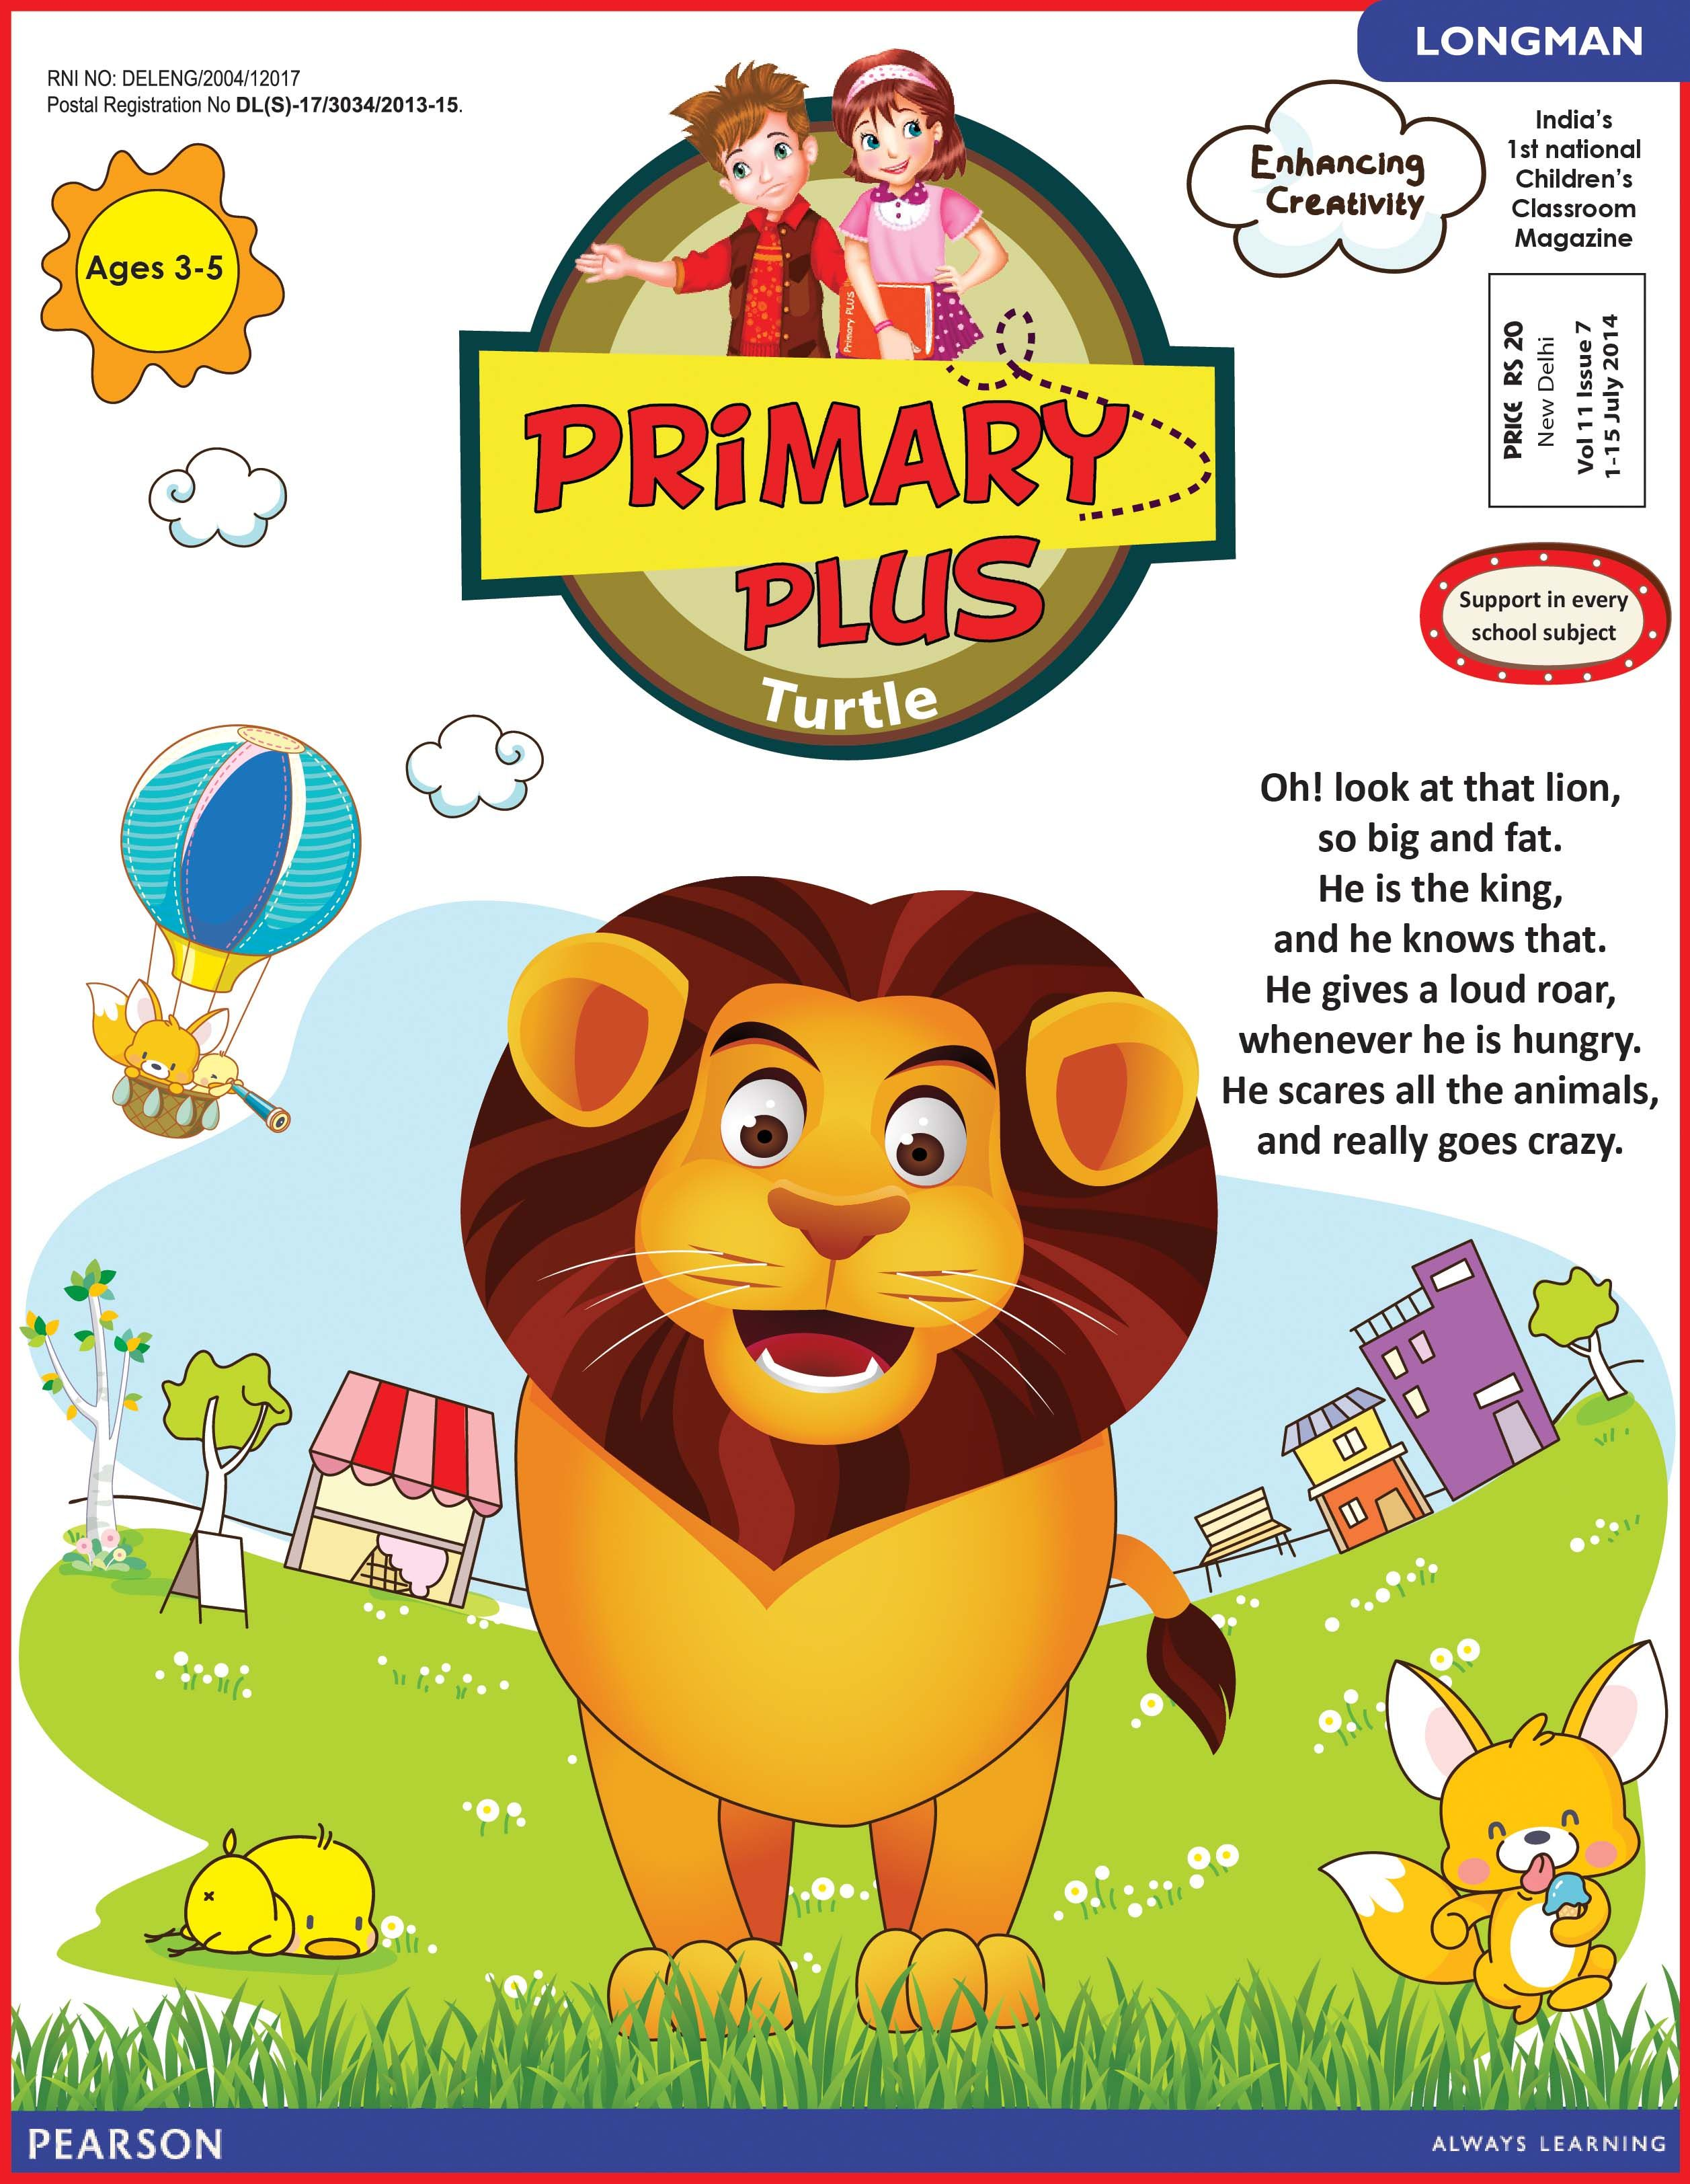 Primary Plus Turtle Issue I July 2014 Cover Page Primary